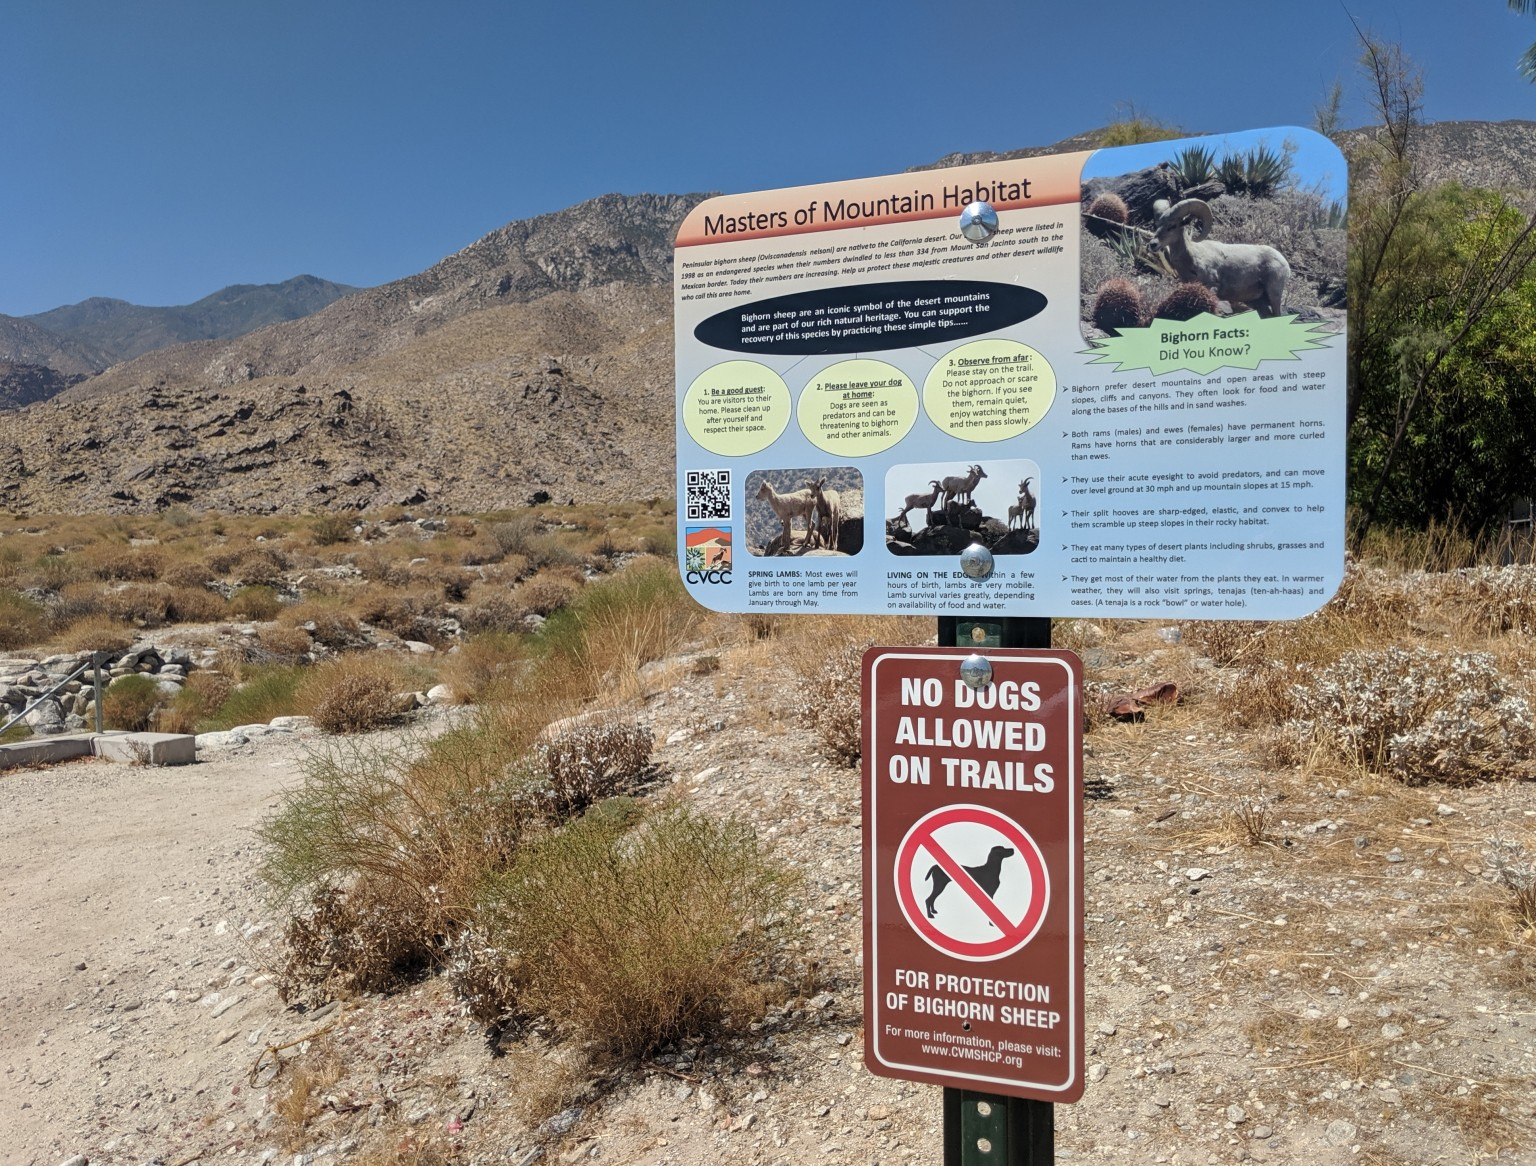 Dogs No Longer Allowed on Popular Palm Springs Trails